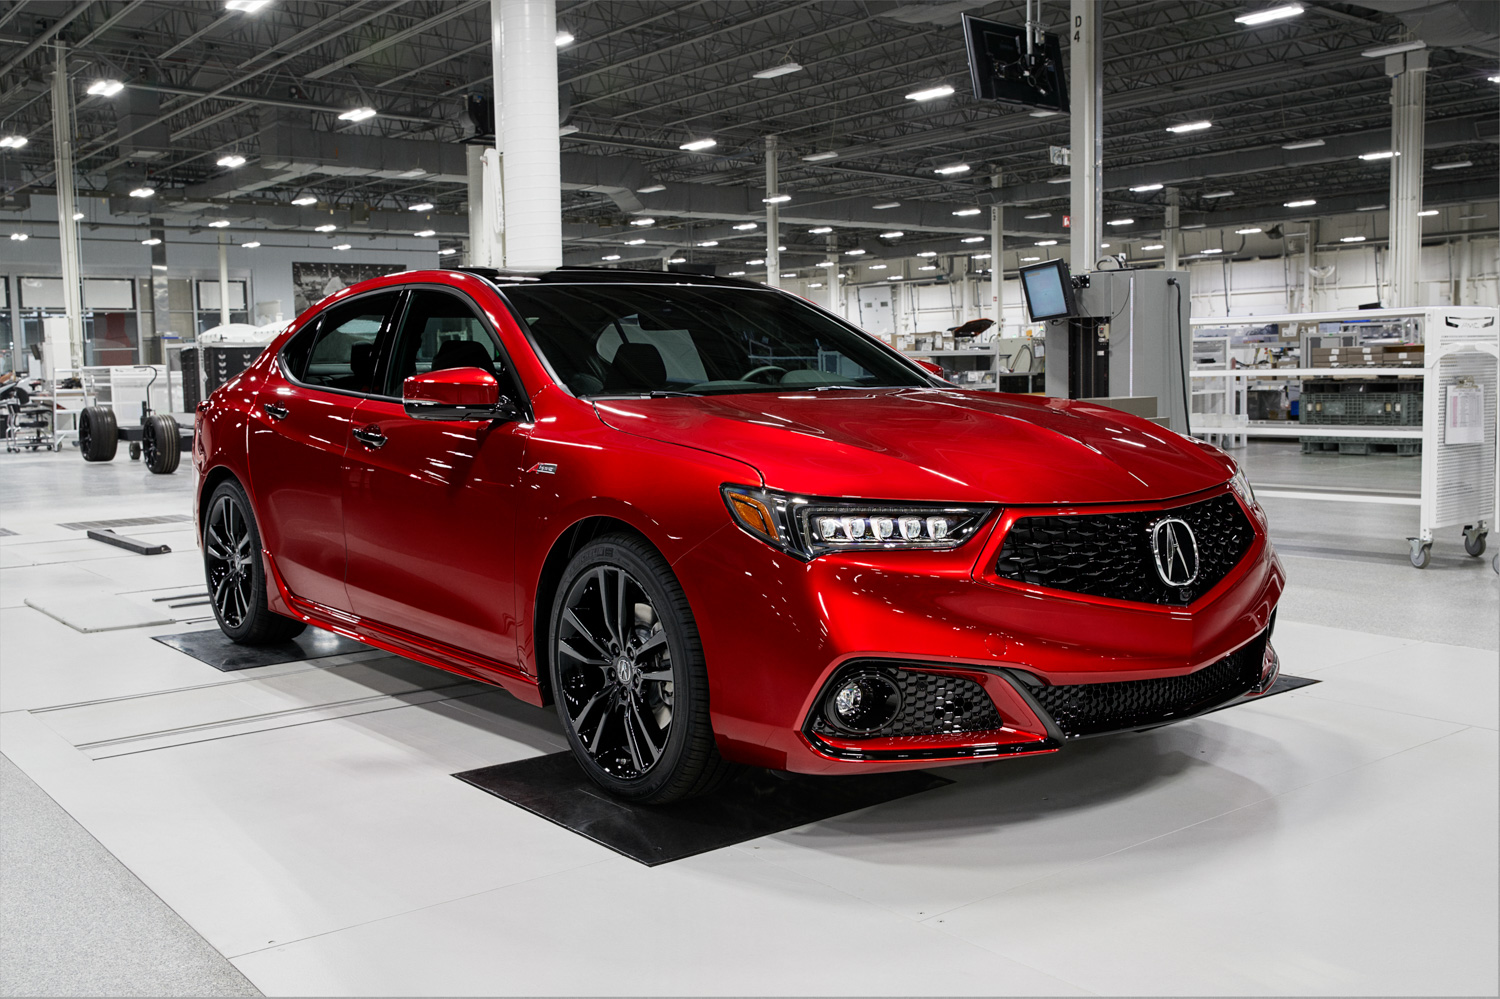 2020 Acura TLX PMC Edition 3/4 front